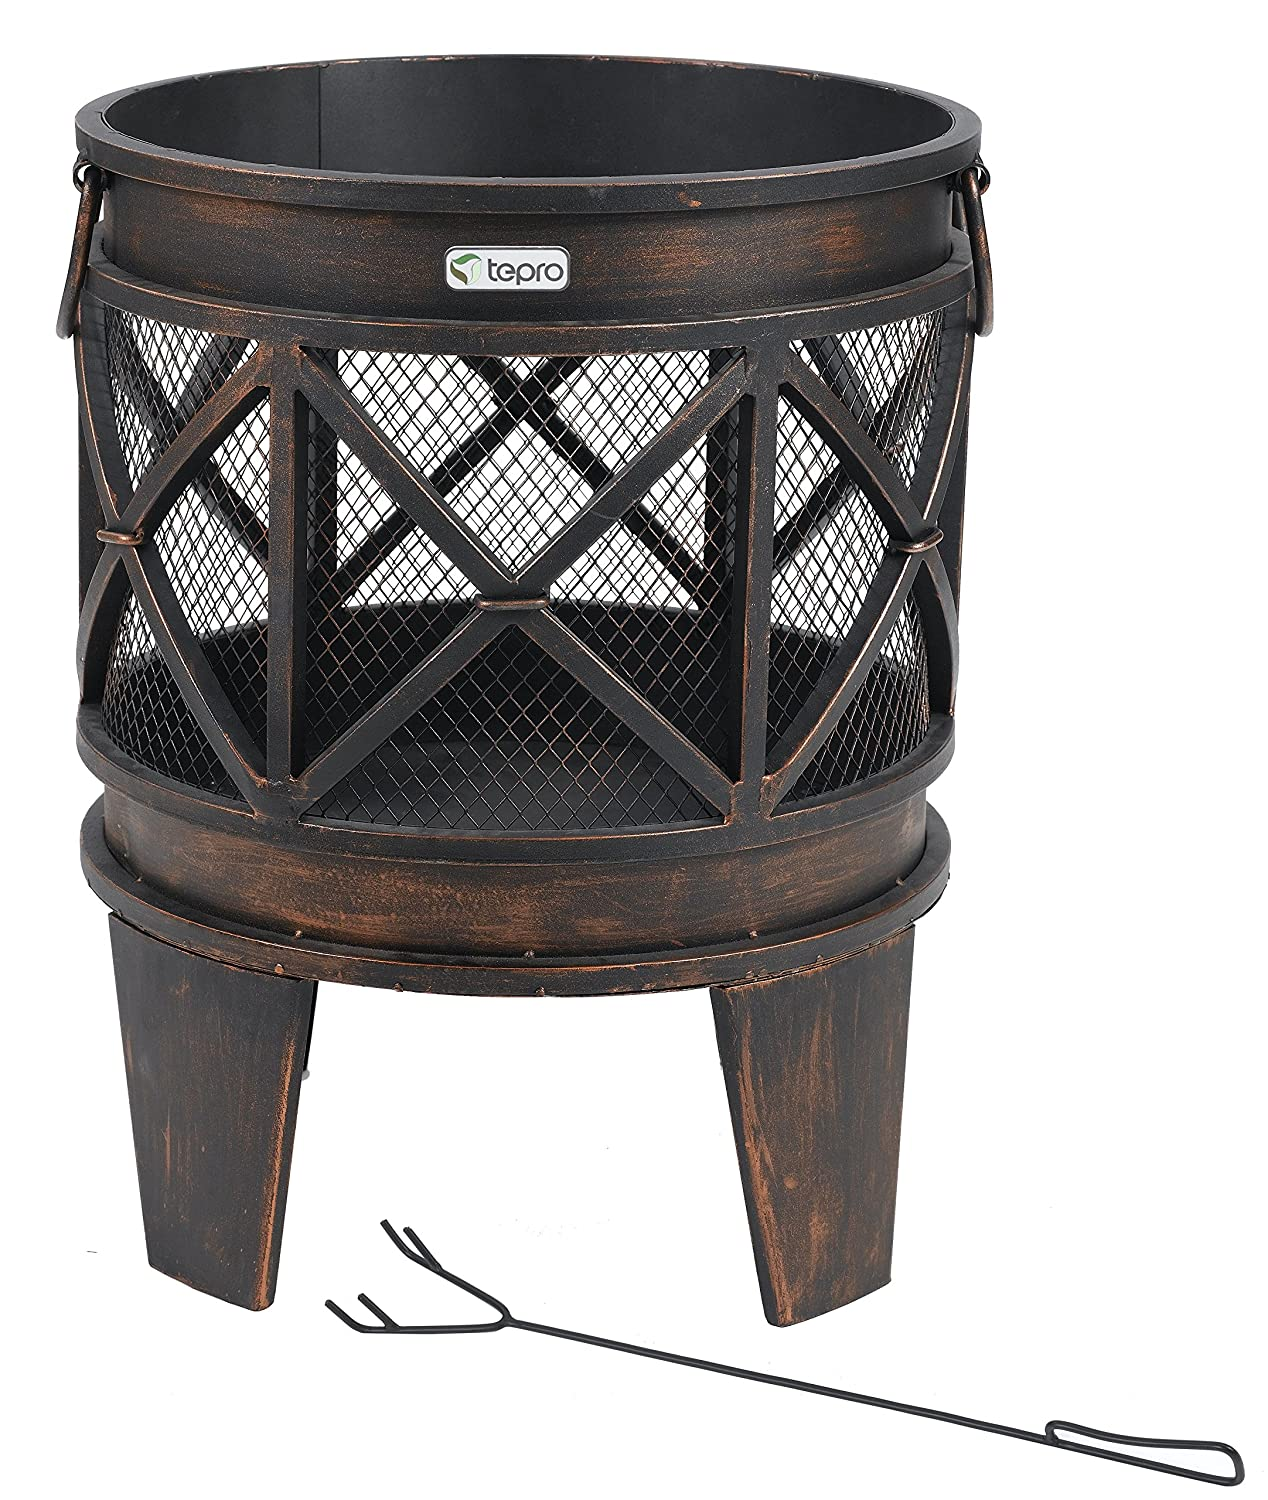 Tepro 1127 Gracewood Fireplace/Firepit - Antique Look